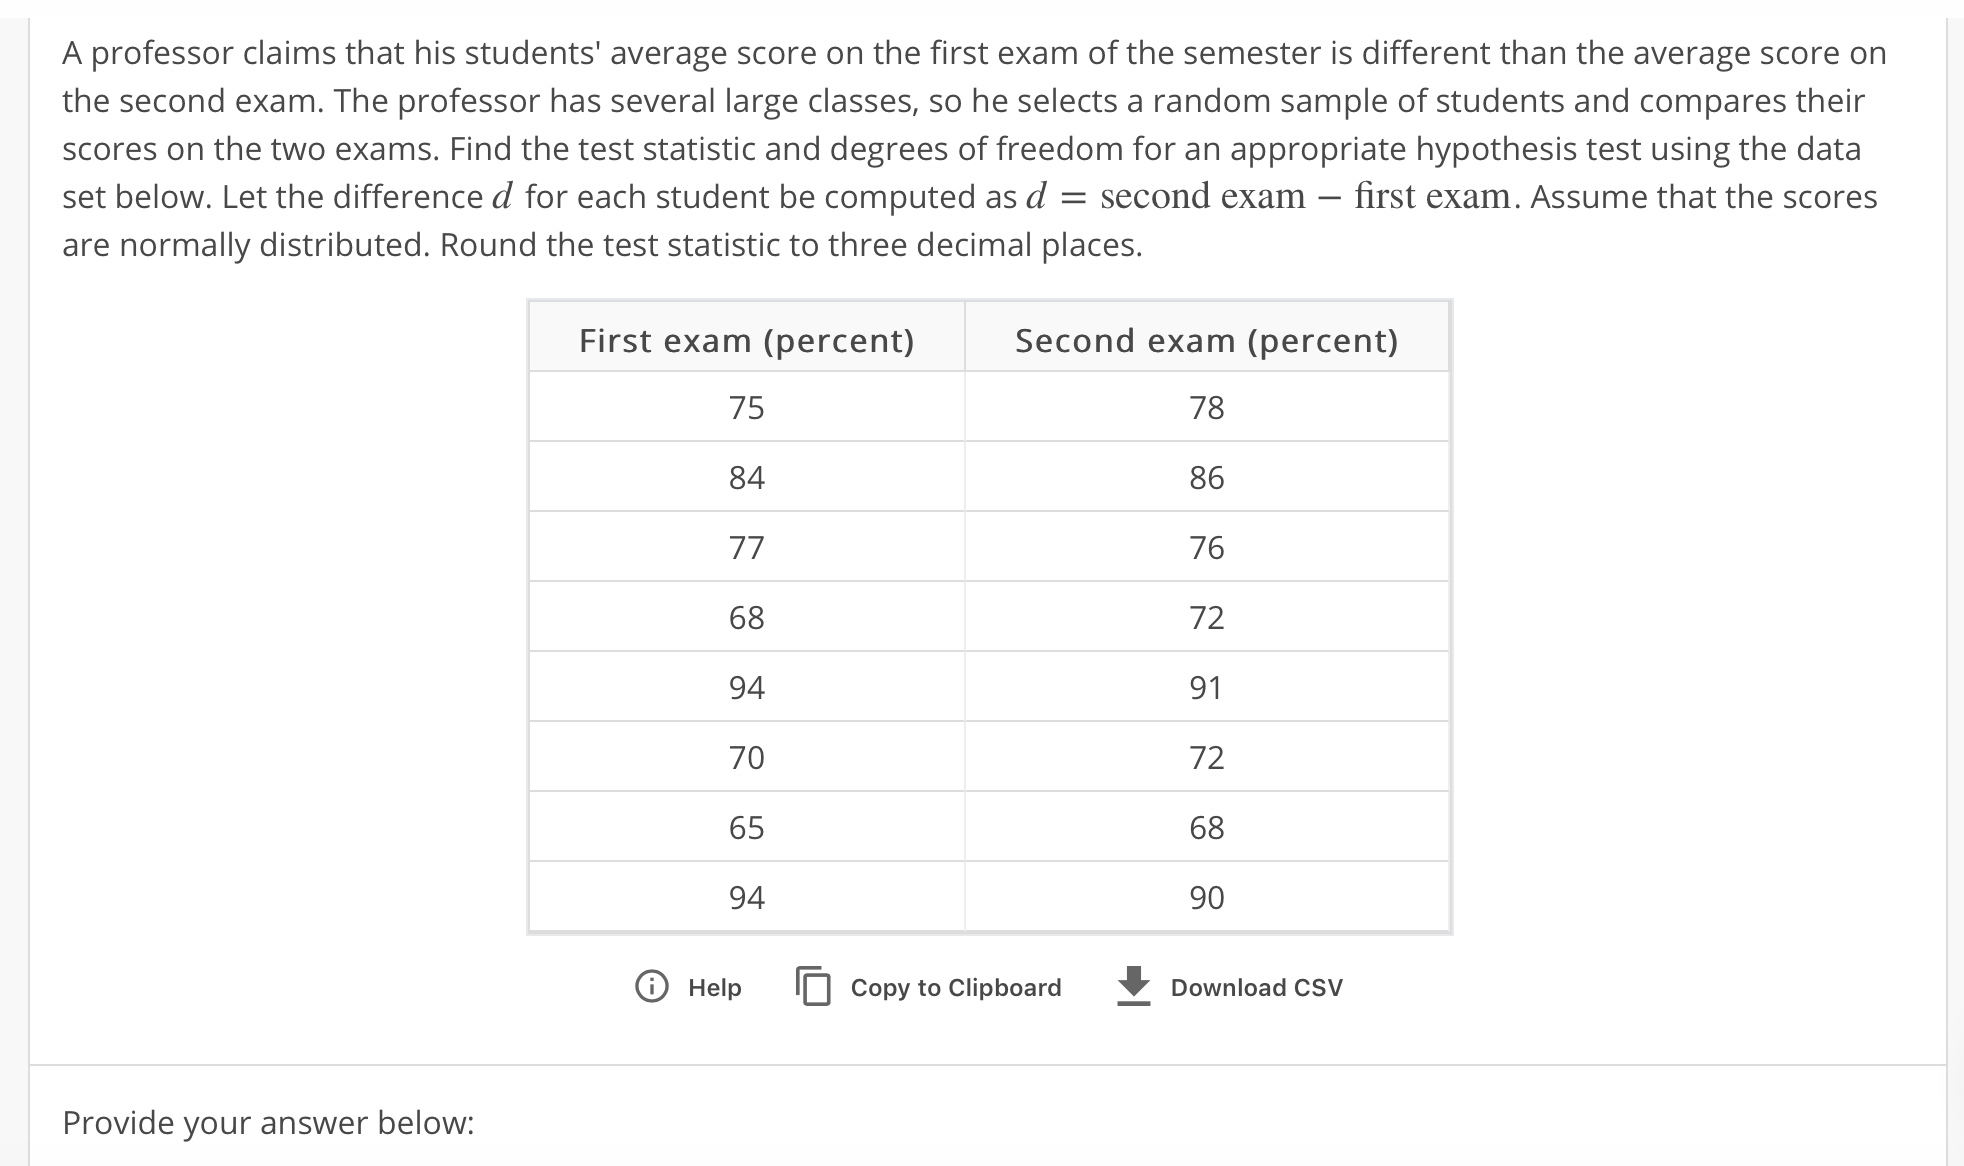 A professor claims that his students' average score on the first exam of the semester is different than the average score orn the second exam. The professor has several large classes, so he selects a random sample of students and compares their scores on the two exams. Find the test statistic and degrees of freedom for an appropriate hypothesis test using the data set below. Let the difference for each student be computed as đ second exam-first exam. Assume that the scores are normally distributed. Round the test statistic to three decimal places. Second exam (percent) 78 86 76 72 91 72 68 90 First exam (percent) 75 84 68 94 70 65 94 T Help Copy to Clipboard Download CSV Provide your answer below